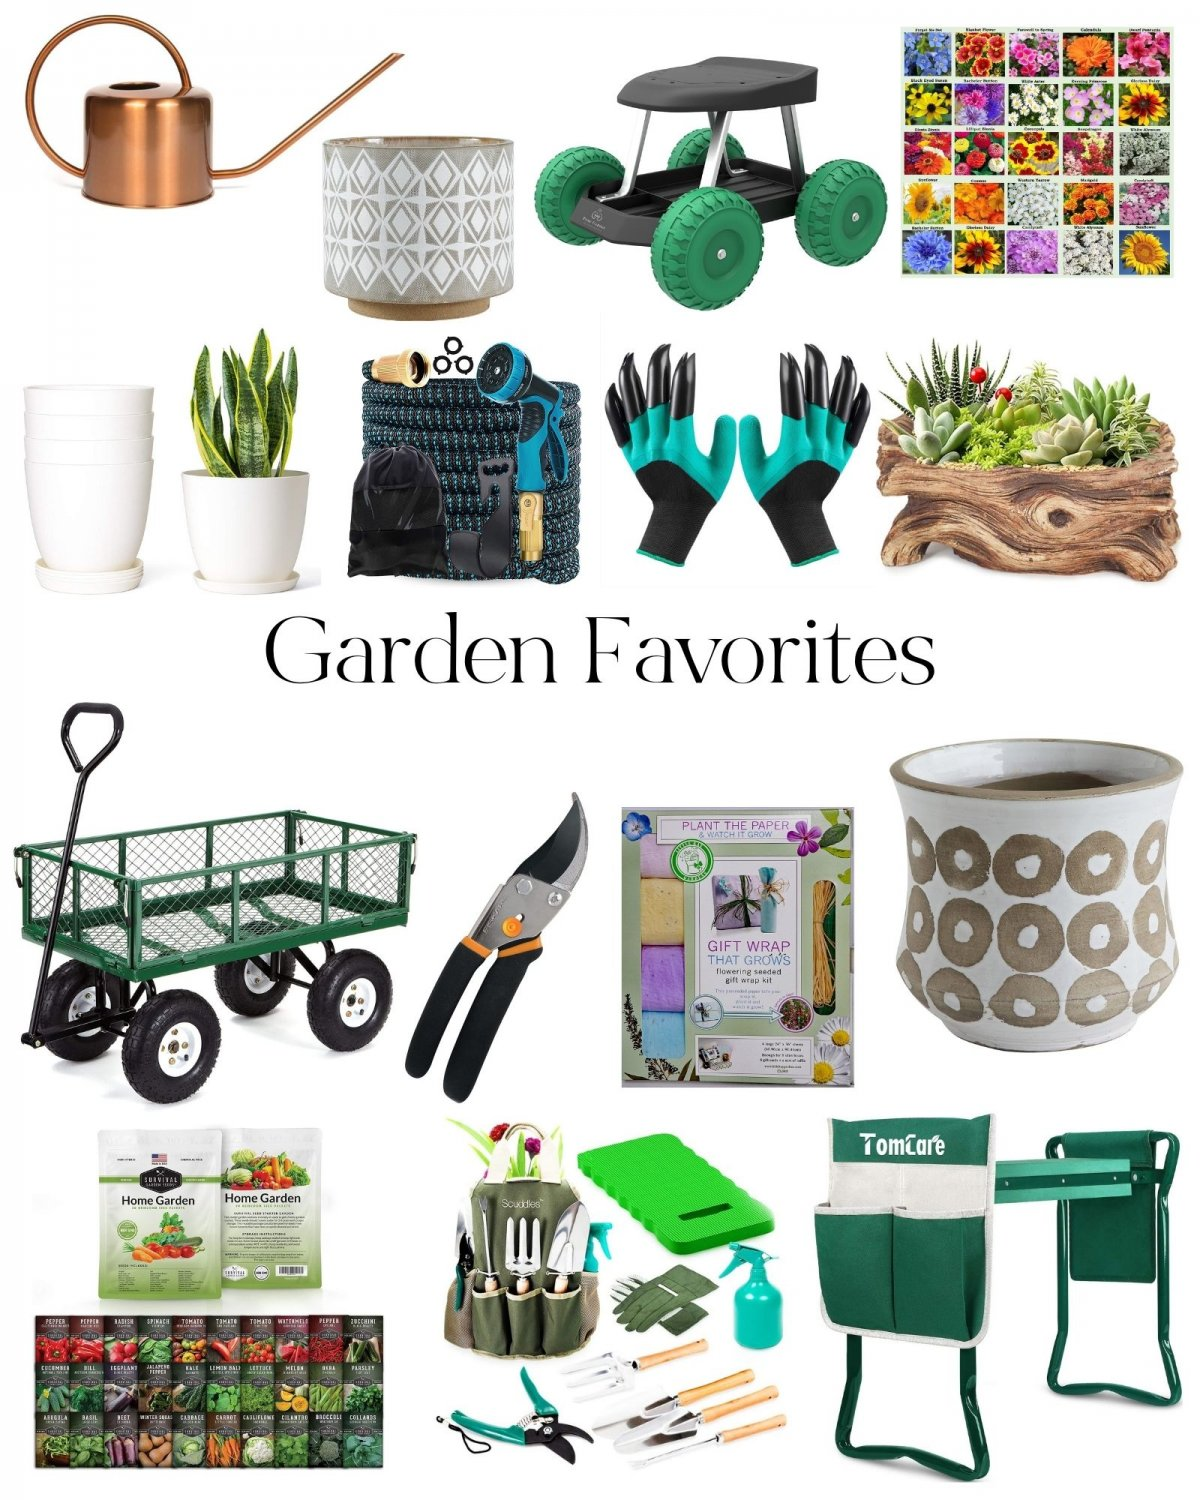 Spring is here and it's time to start making plans. Today I am sharing ways to celebrate spring time!